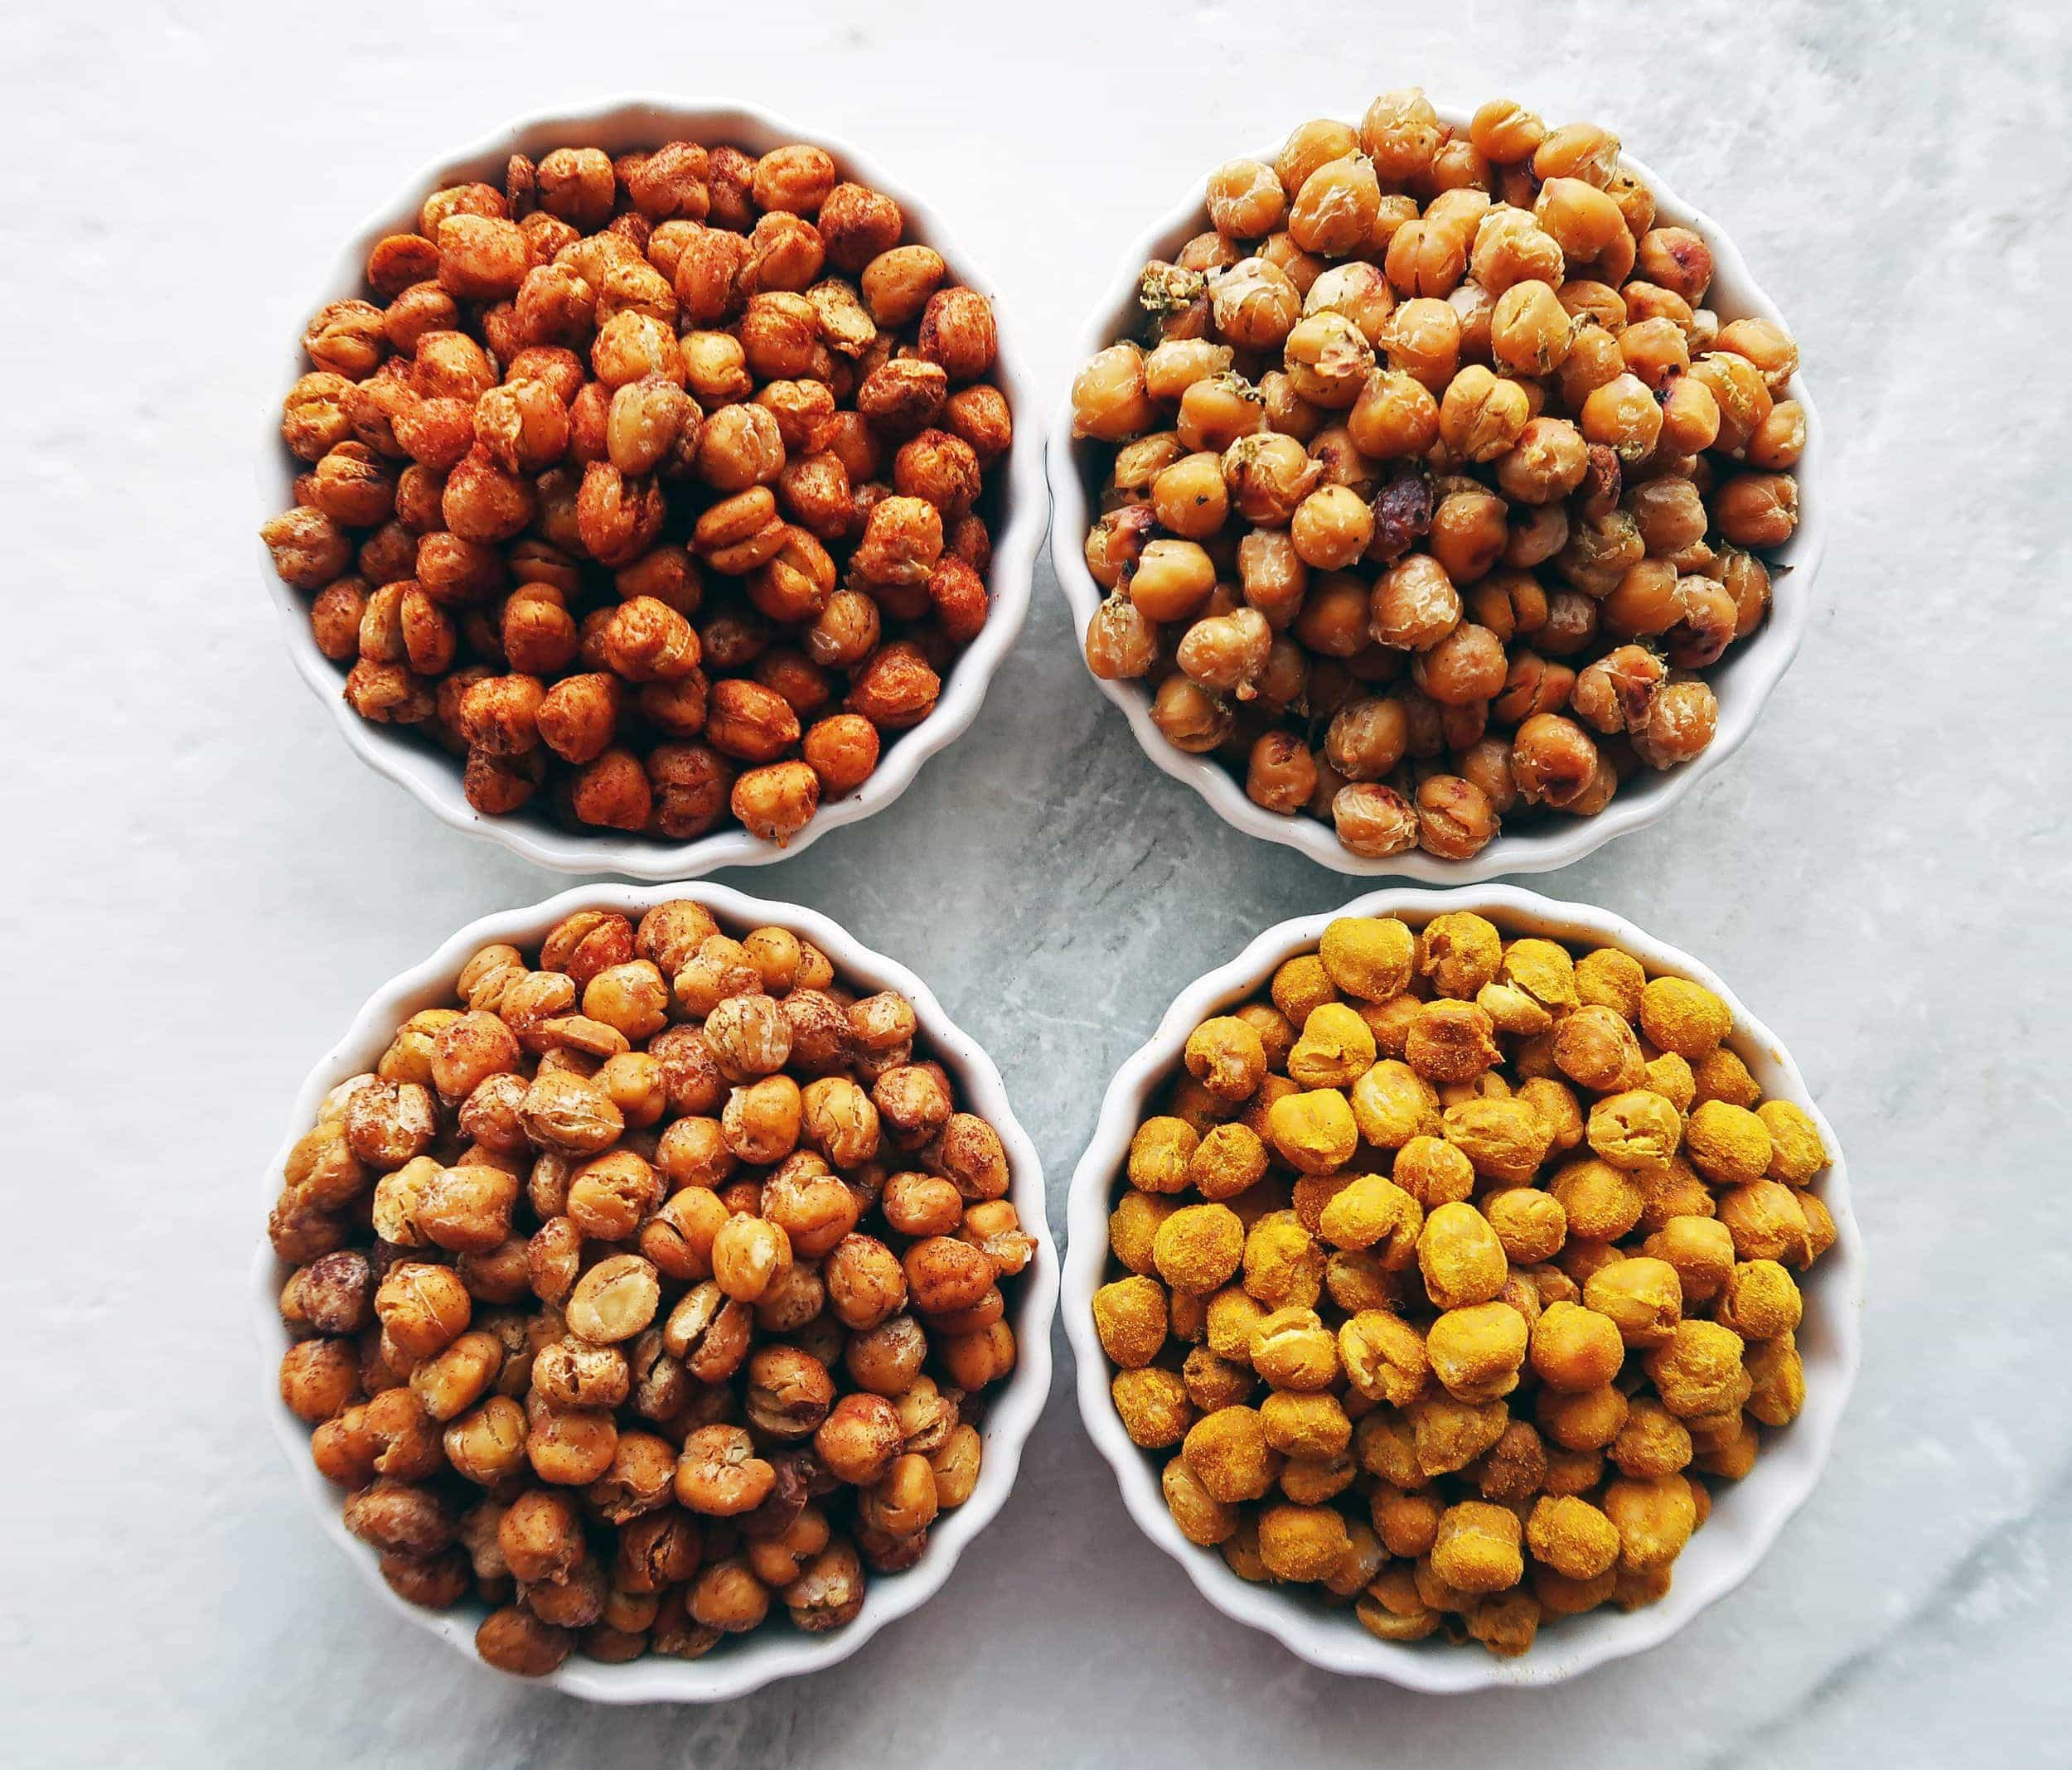 Crunchy Oven Roasted Chickpeas 4 Ways